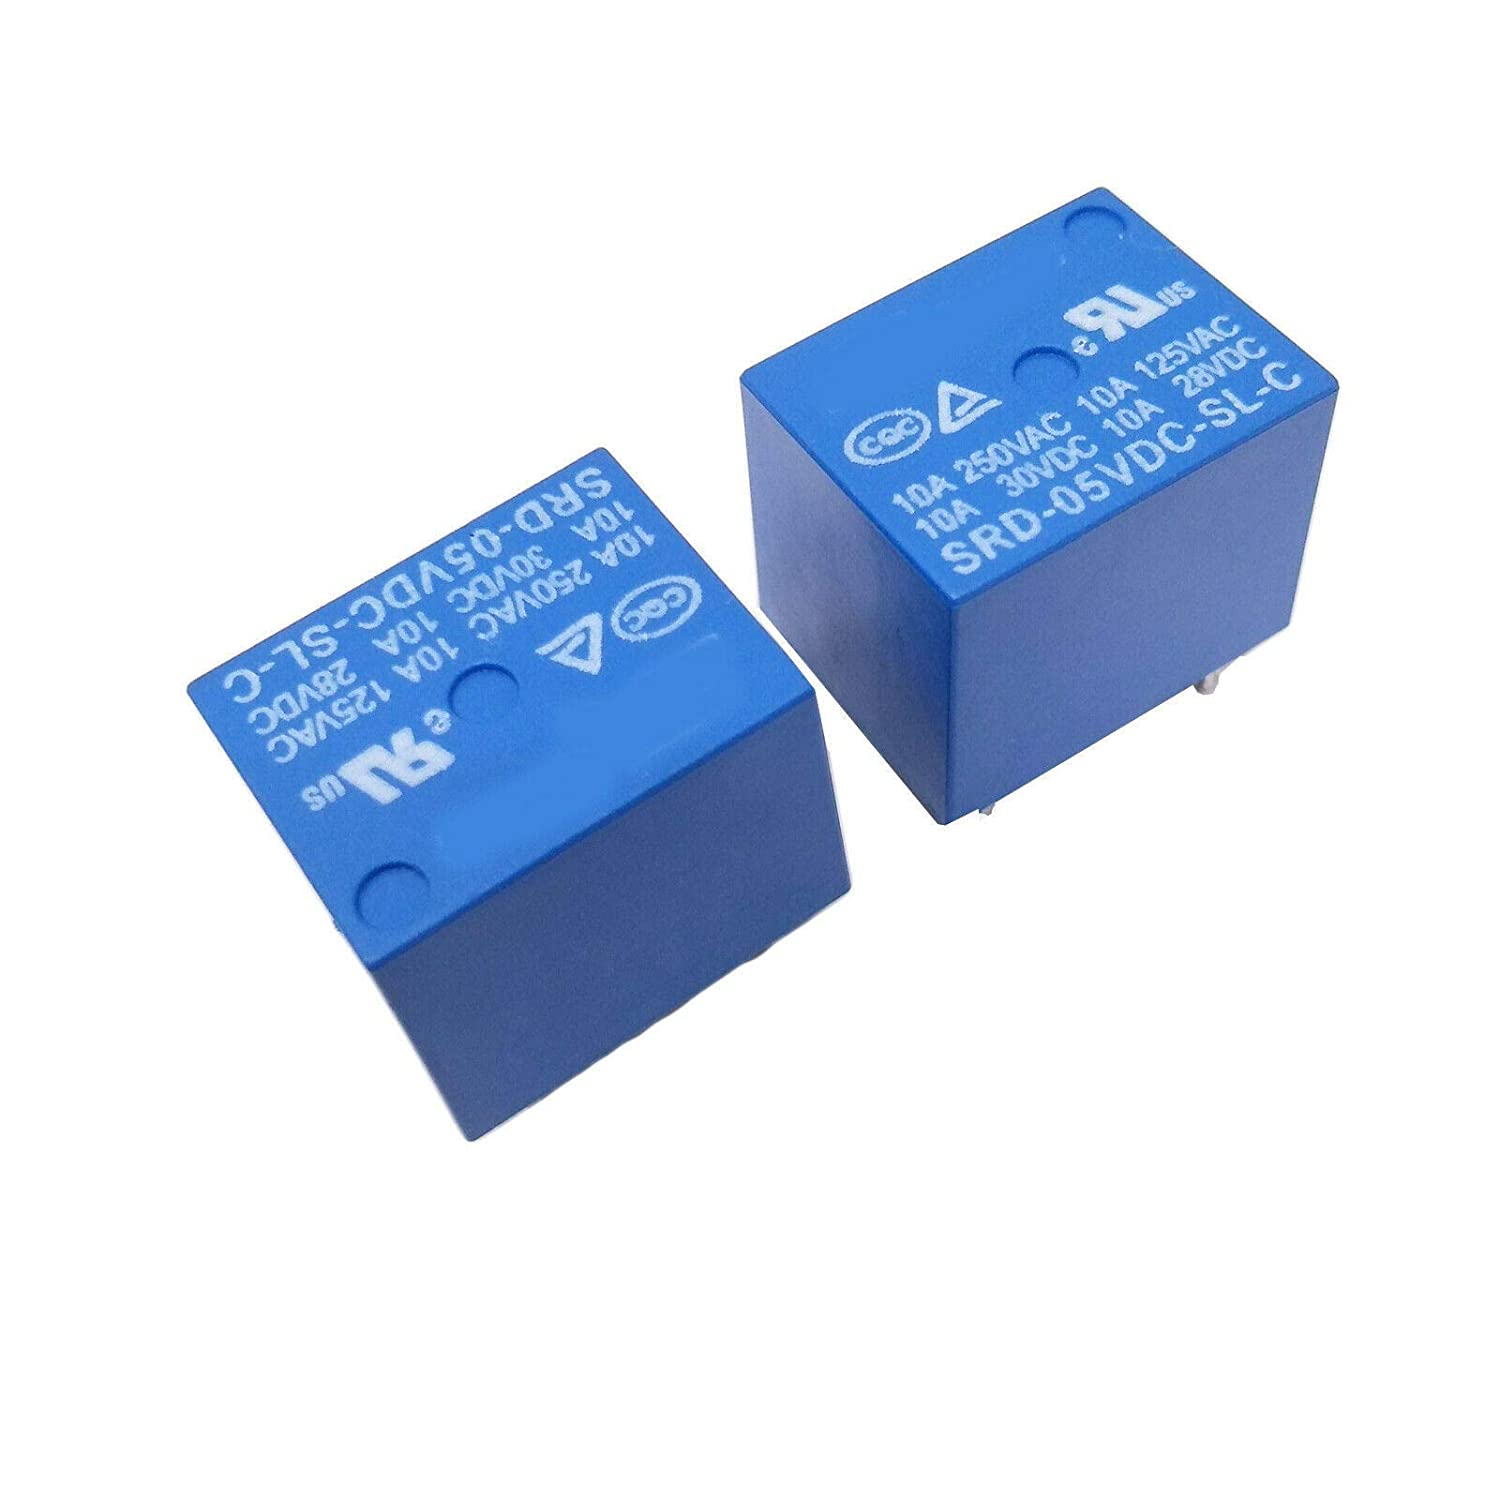 5pcs SRD-03VDC-SL-C 3V DC SONGLE Power Relay SRD-03VDC-SL-C PCB Type SPDT